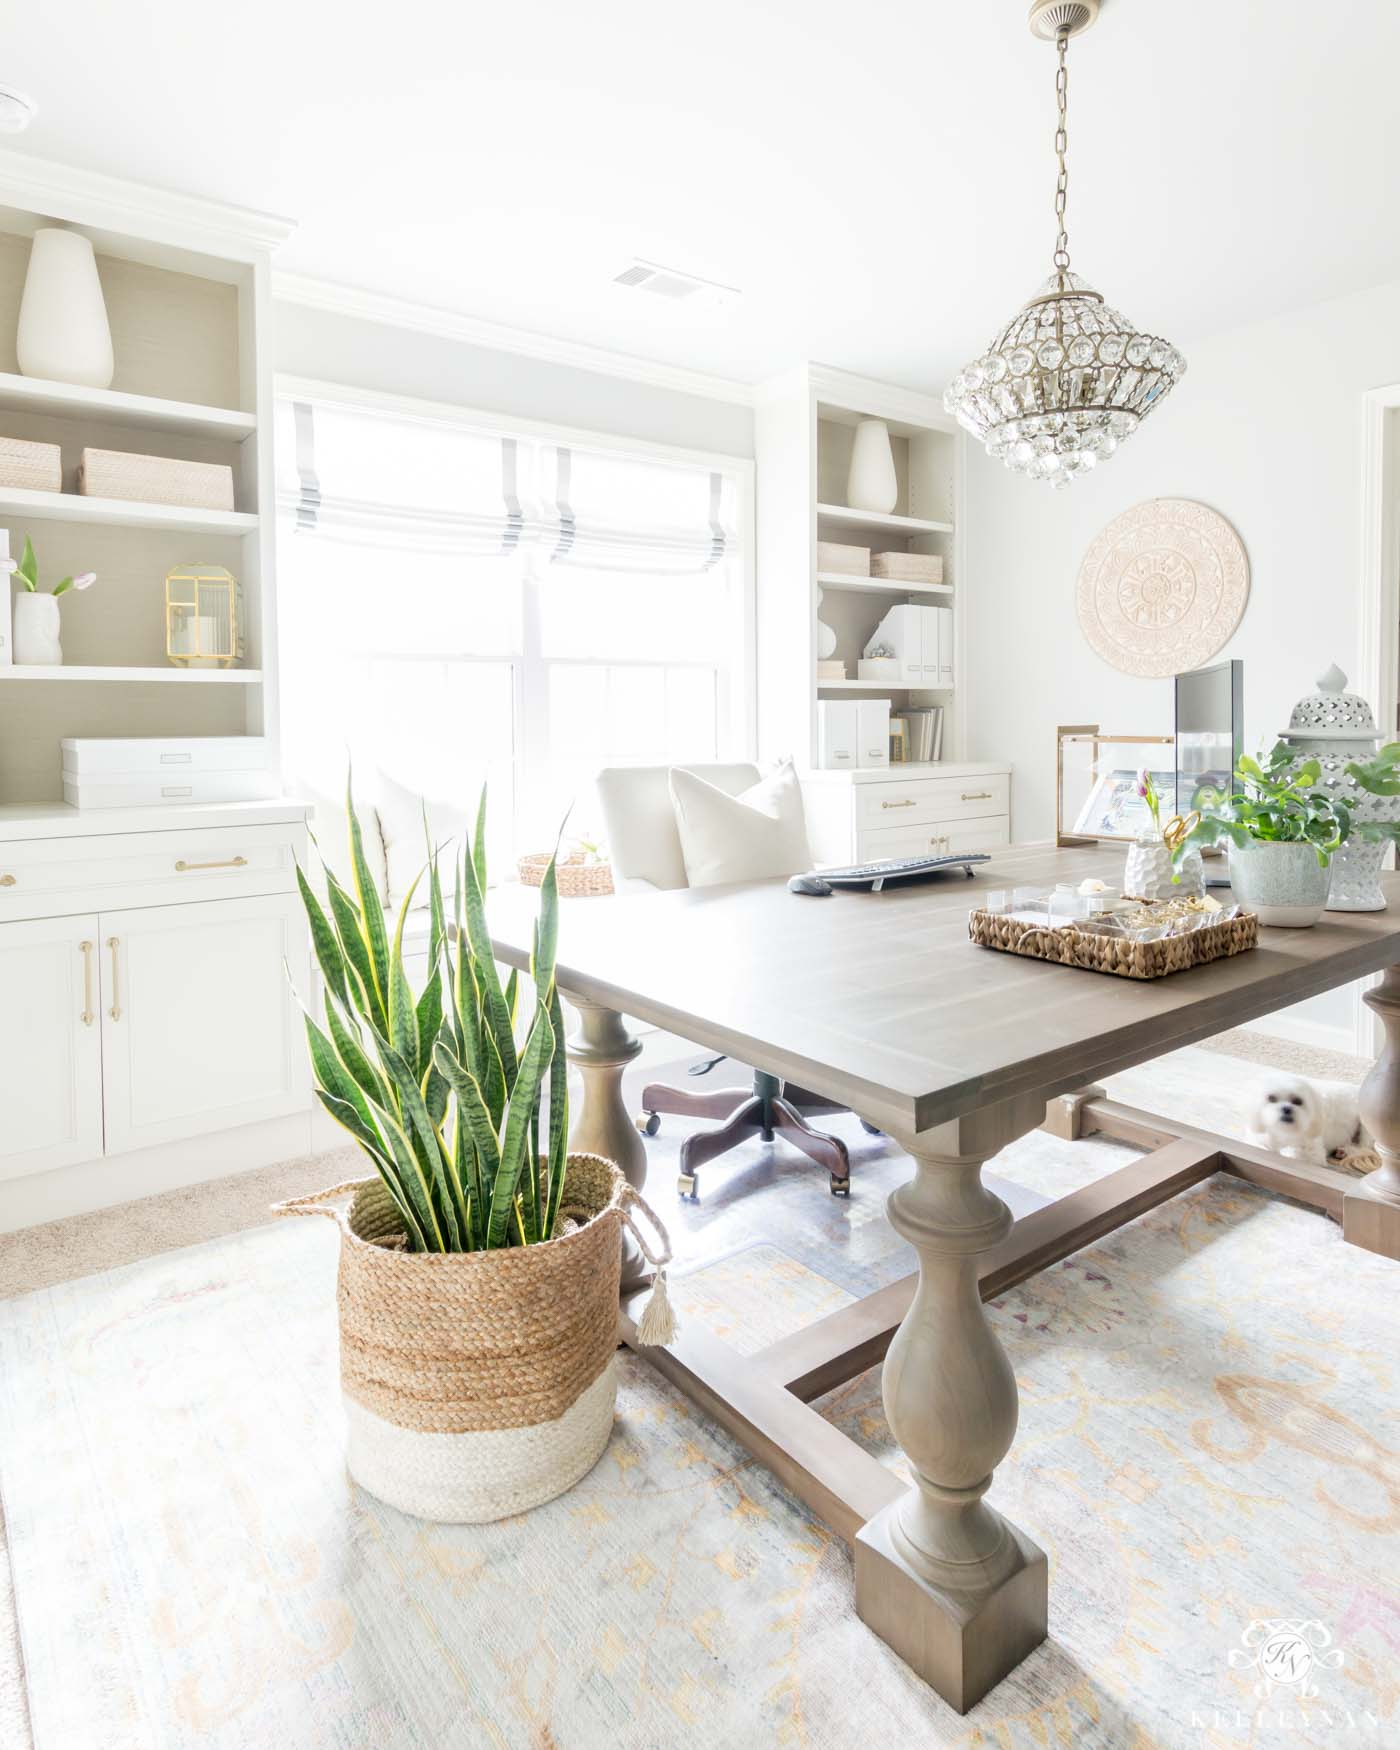 How to incorporate spring decor into your home office